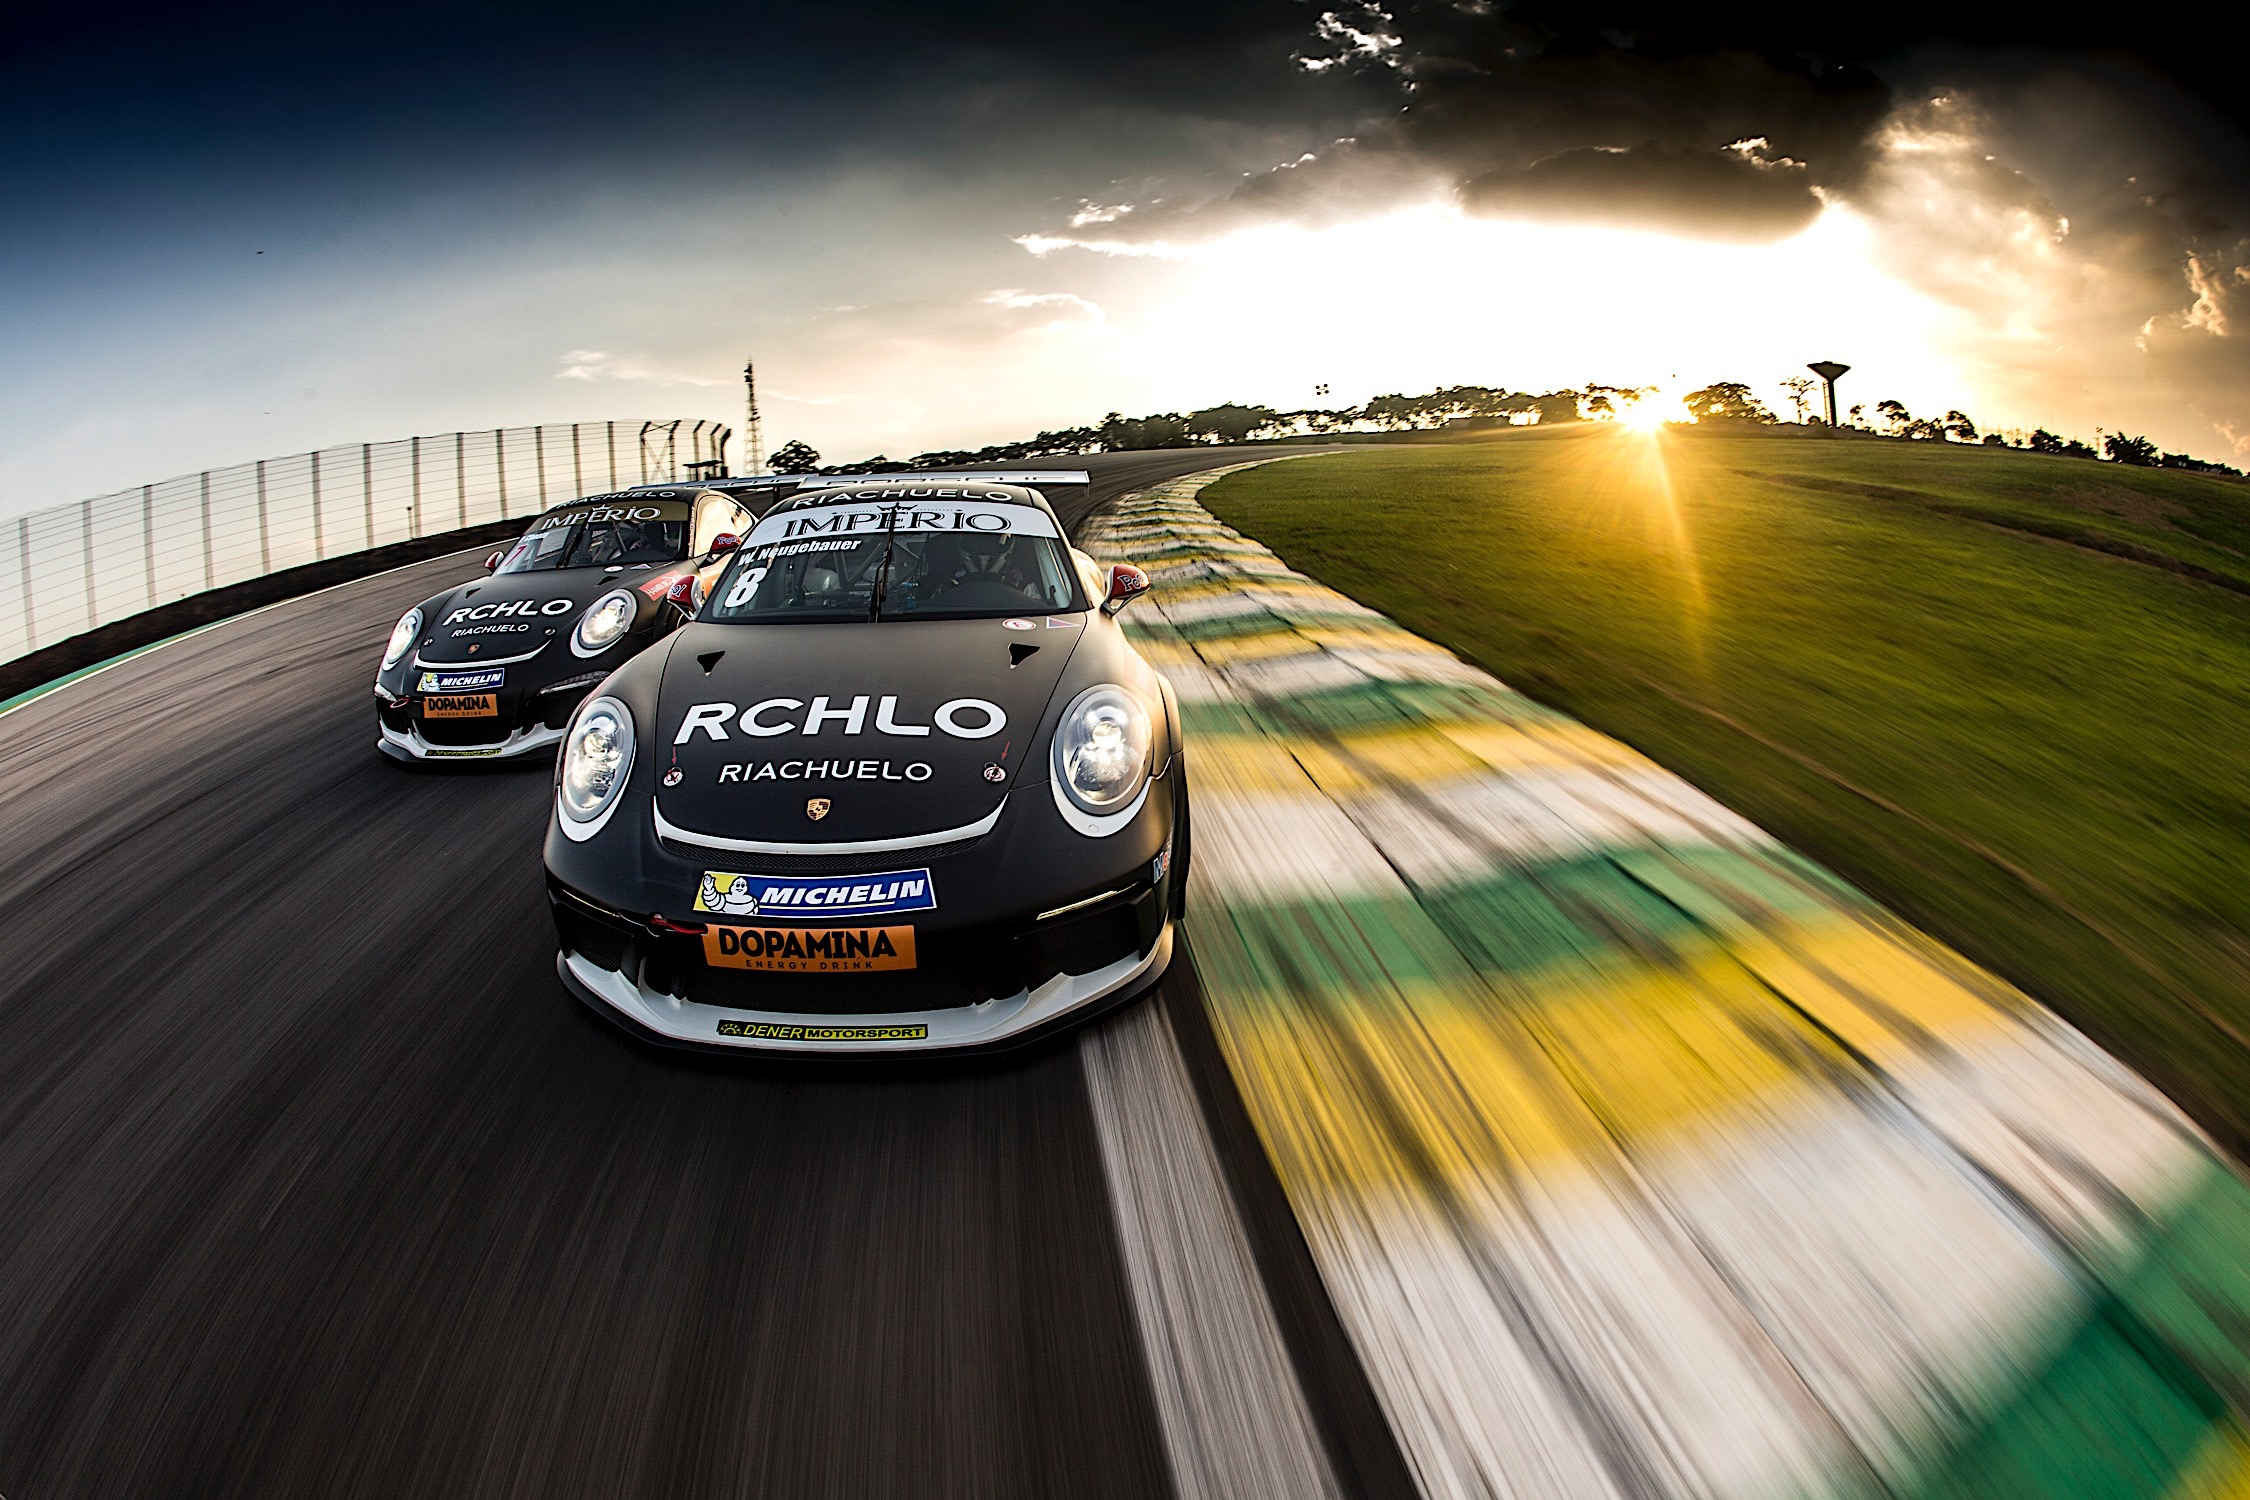 Photo of Porsche Carrera Cup – segunda etapa em Interlagos com briga dura pela pole